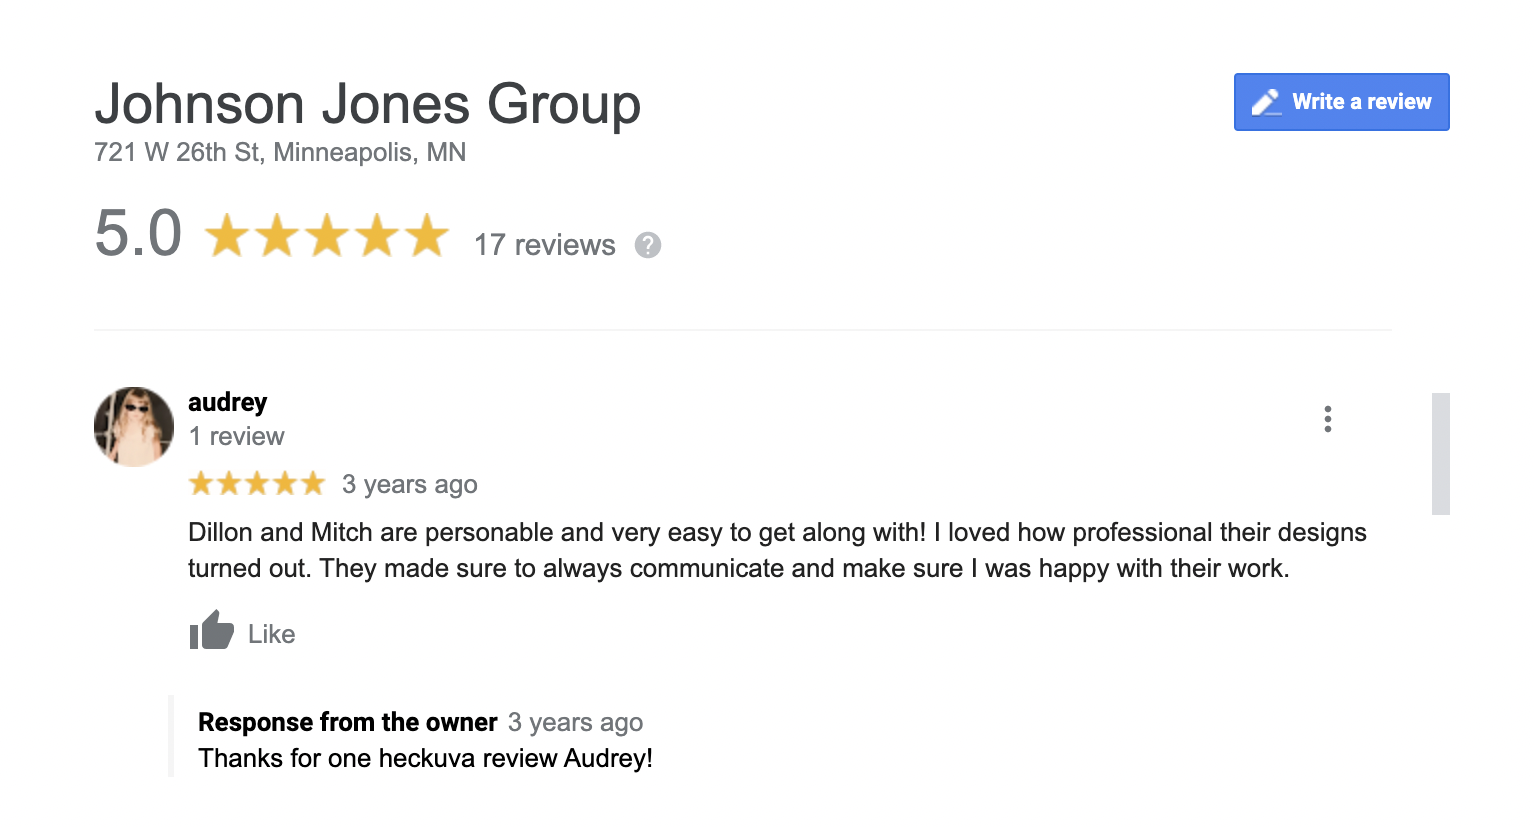 Reviews are key for SEO